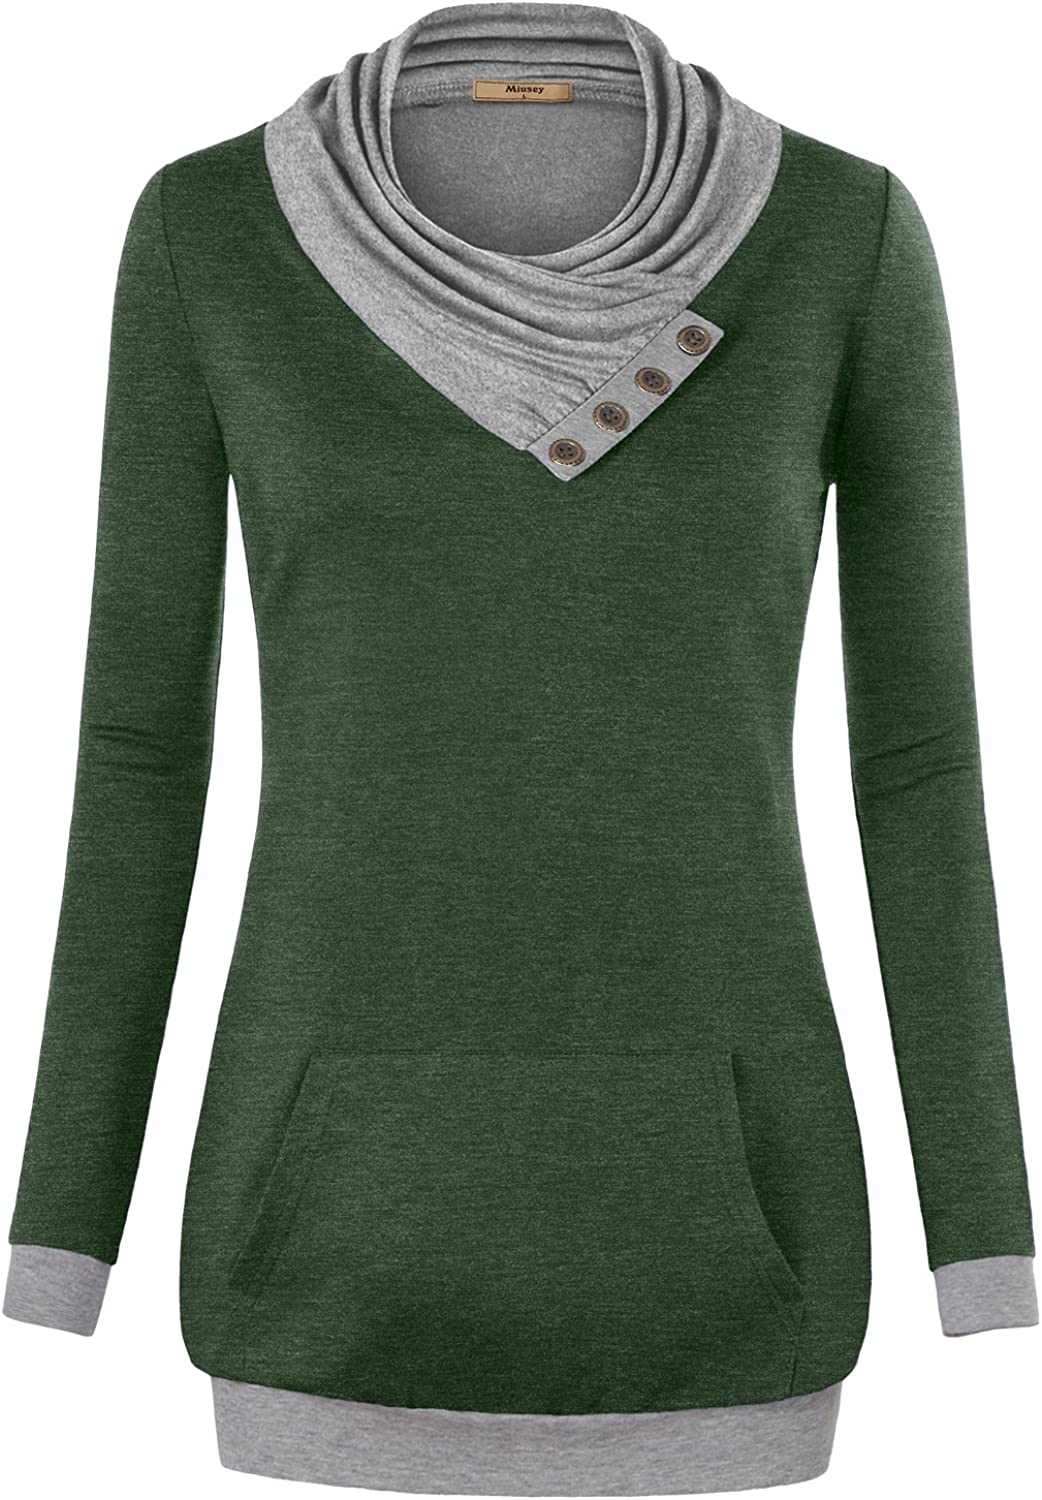 Miusey Womens Cowl Neck Long Sleeve Pullover Tunic Sweatshirts with Pocket